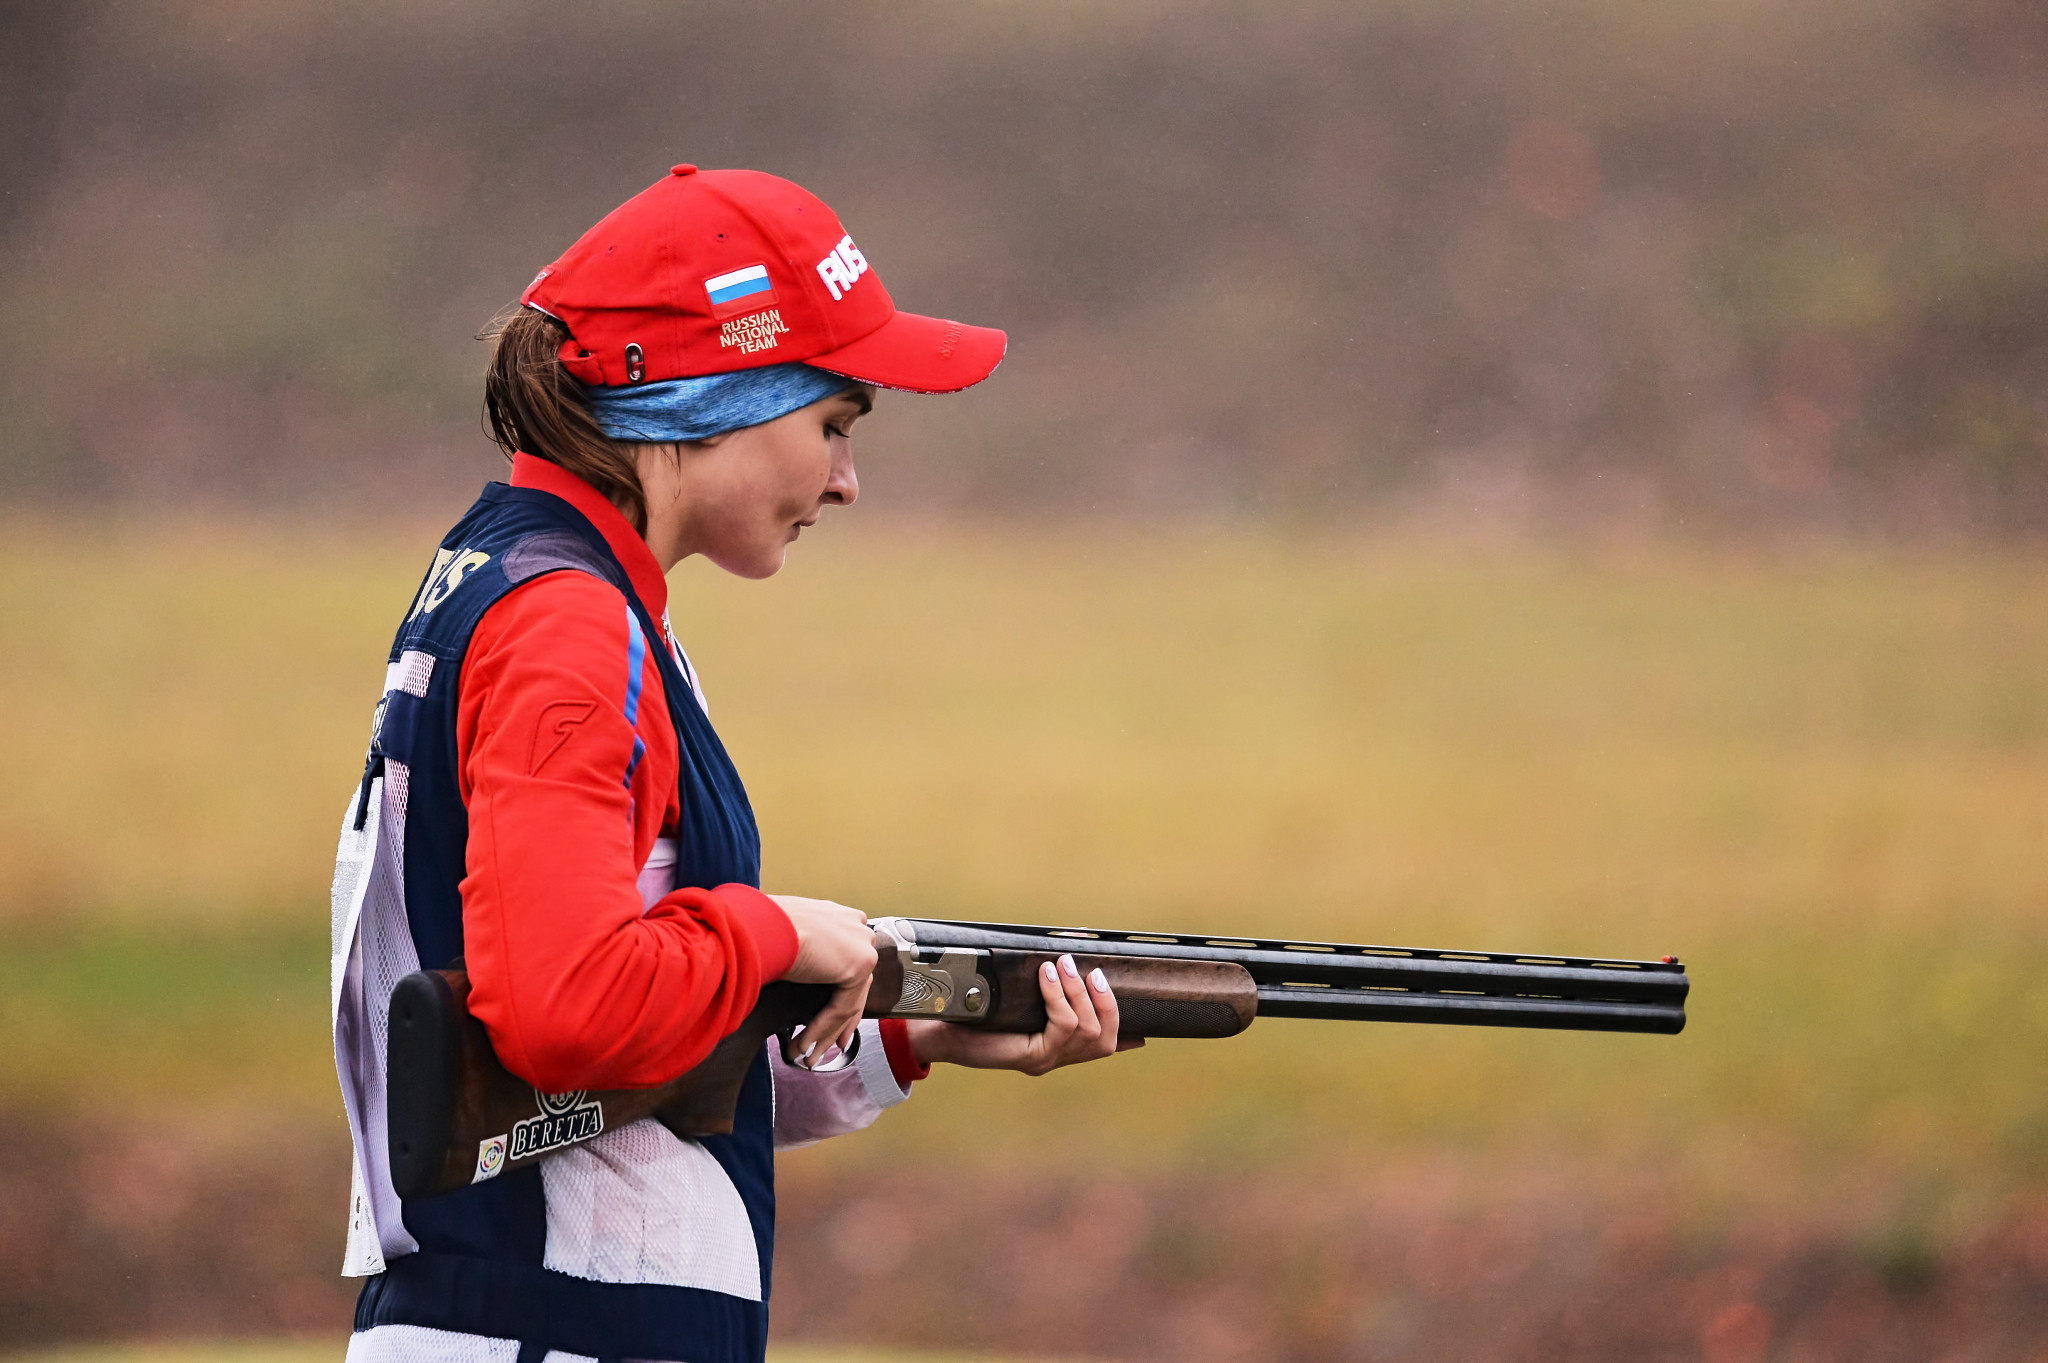 Russian dominance of the Games of the CIS Countries continued in shotgun shooting ©Games of the CIS Countries